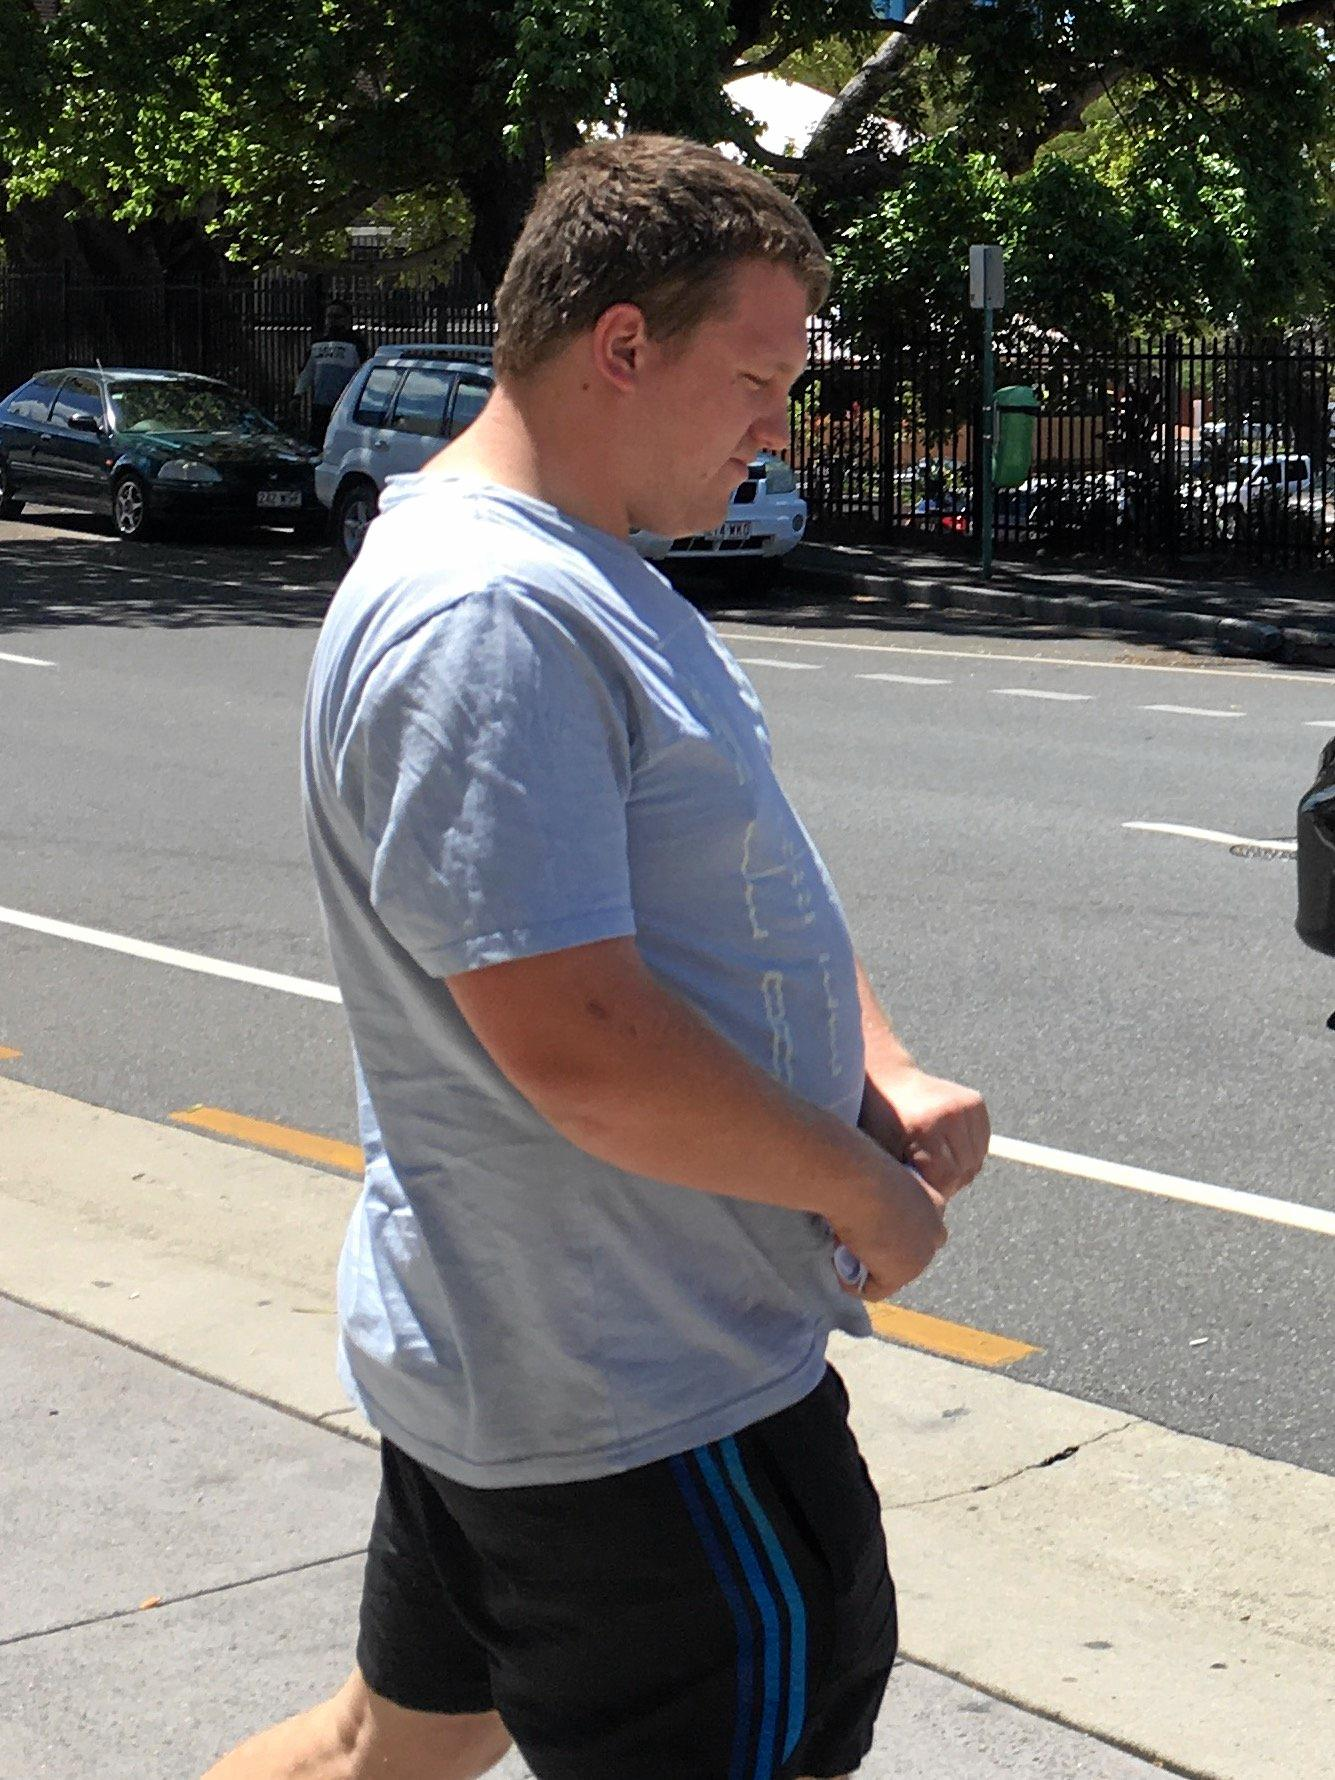 Joshua Madsen-Bennett leaves court after being convicted of fraud.